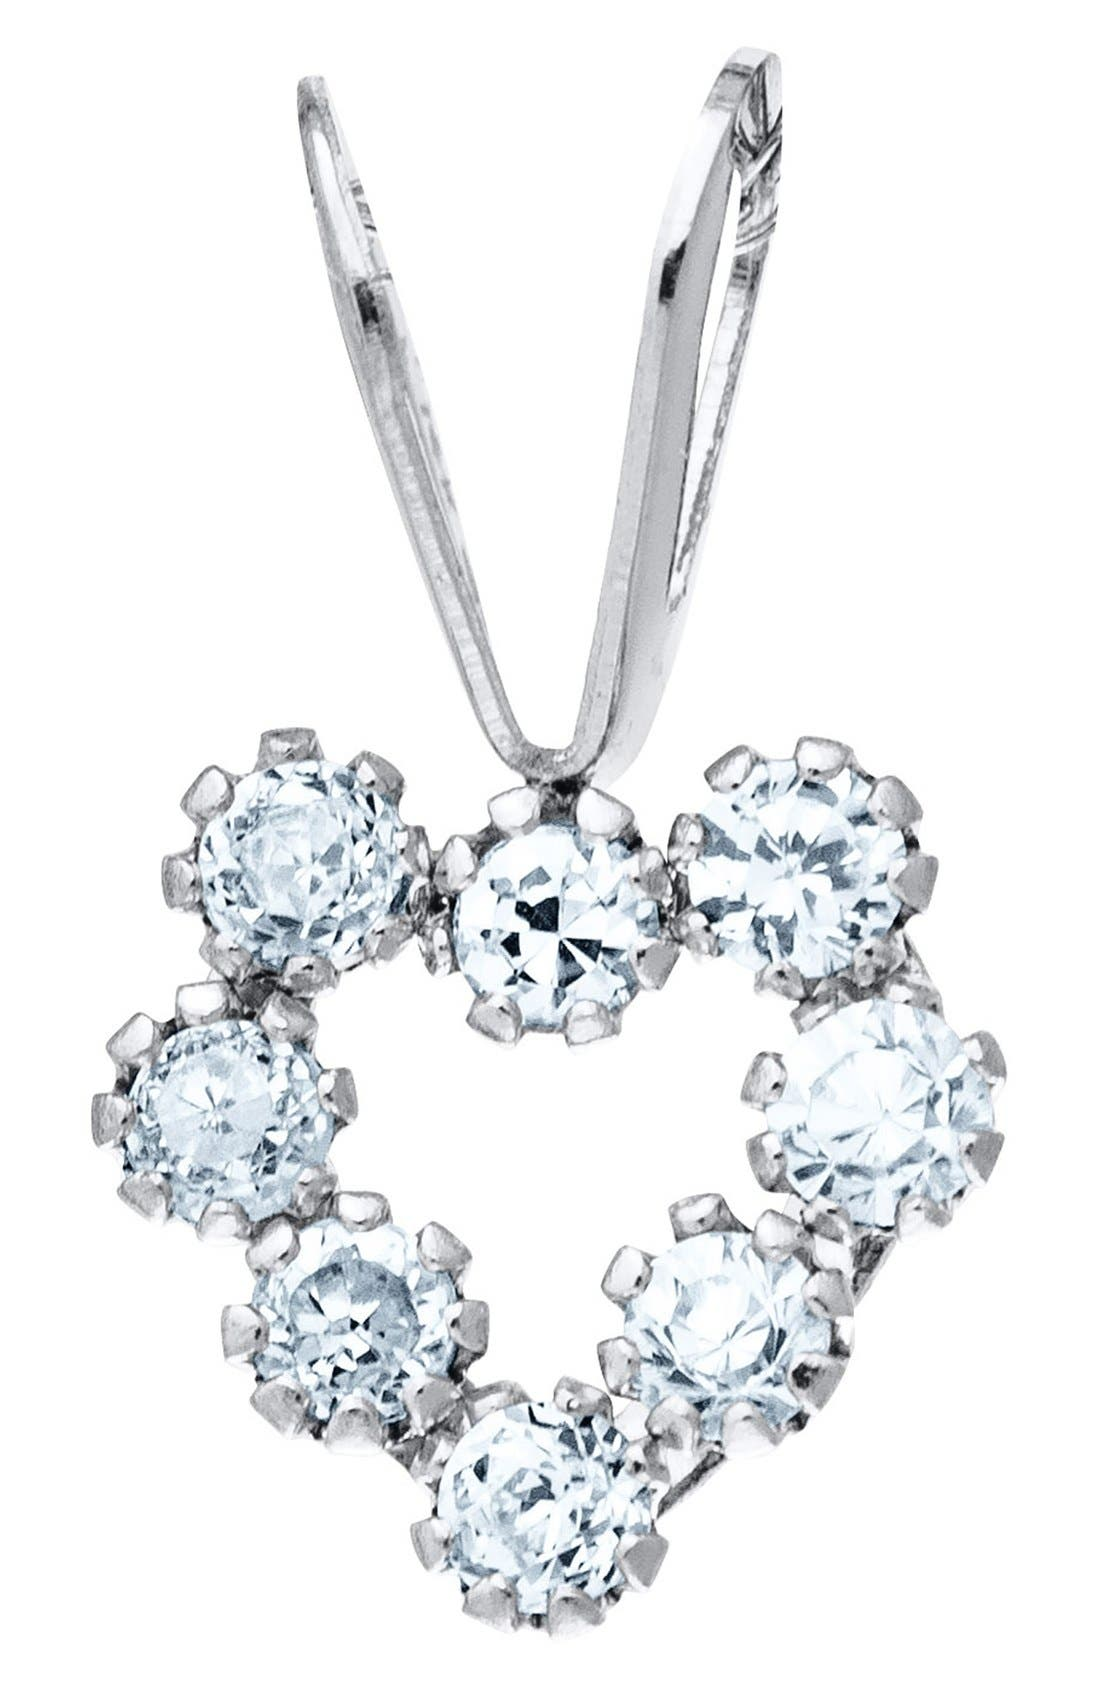 Alternate Image 1 Selected - Mignonette 14k White Gold & Cubic Zirconia Heart Necklace (Girls)